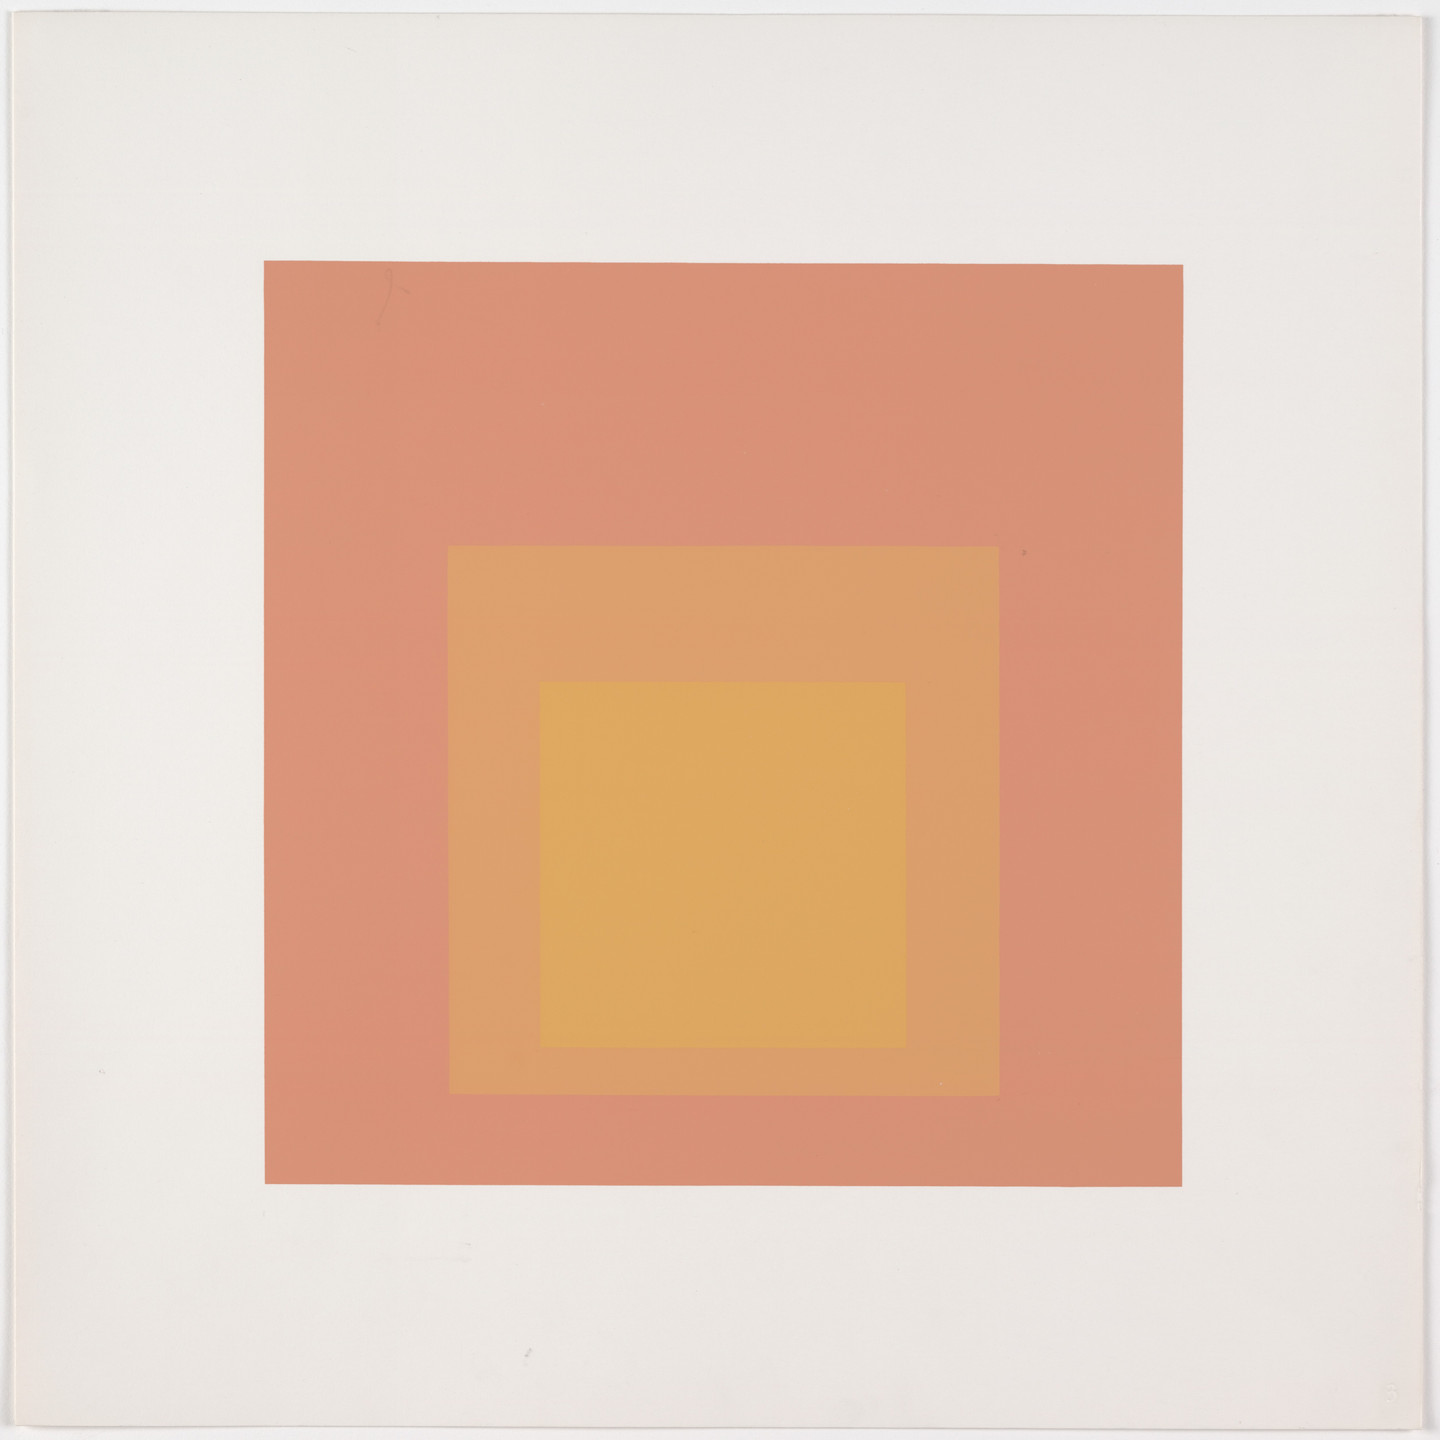 Josef Albers. Tenuous from Homage to the Square: Ten Works by Josef Albers. 1962